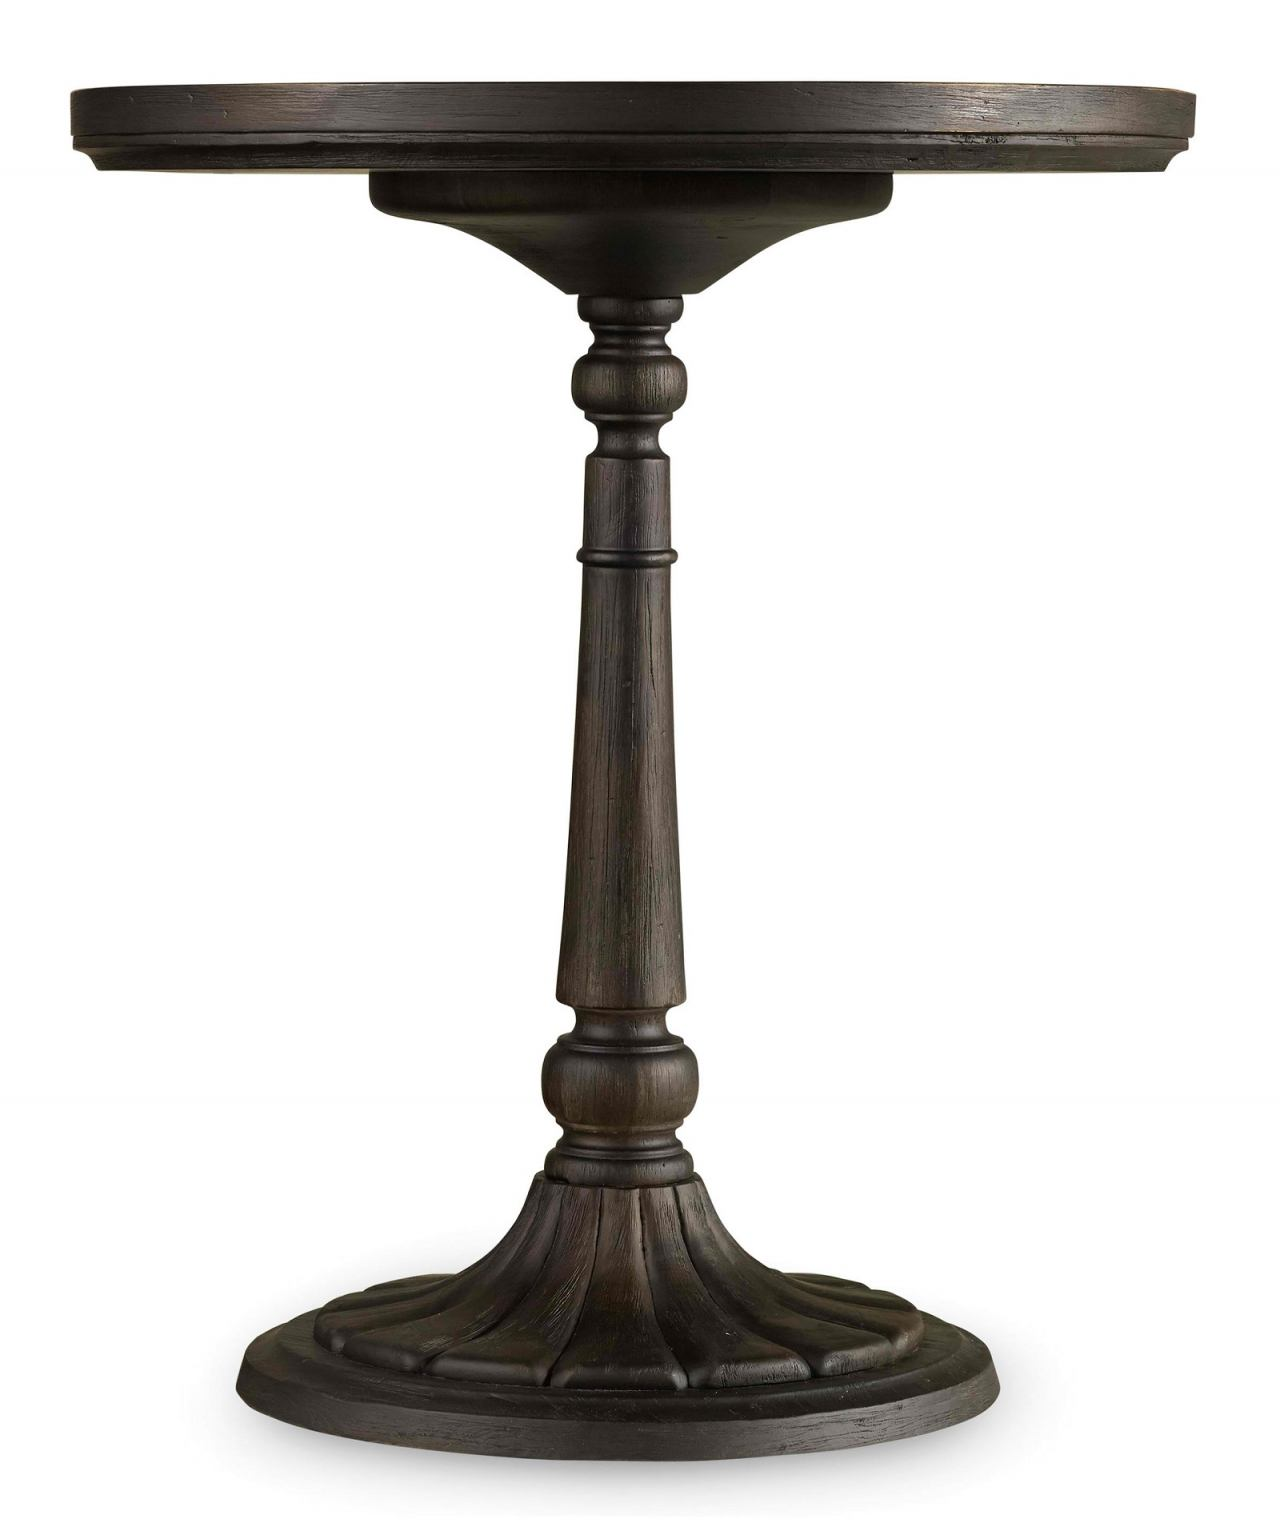 Hooker Furniture Corsica Round Bedside Table in Espresso 5280-90015 CLEARANCE